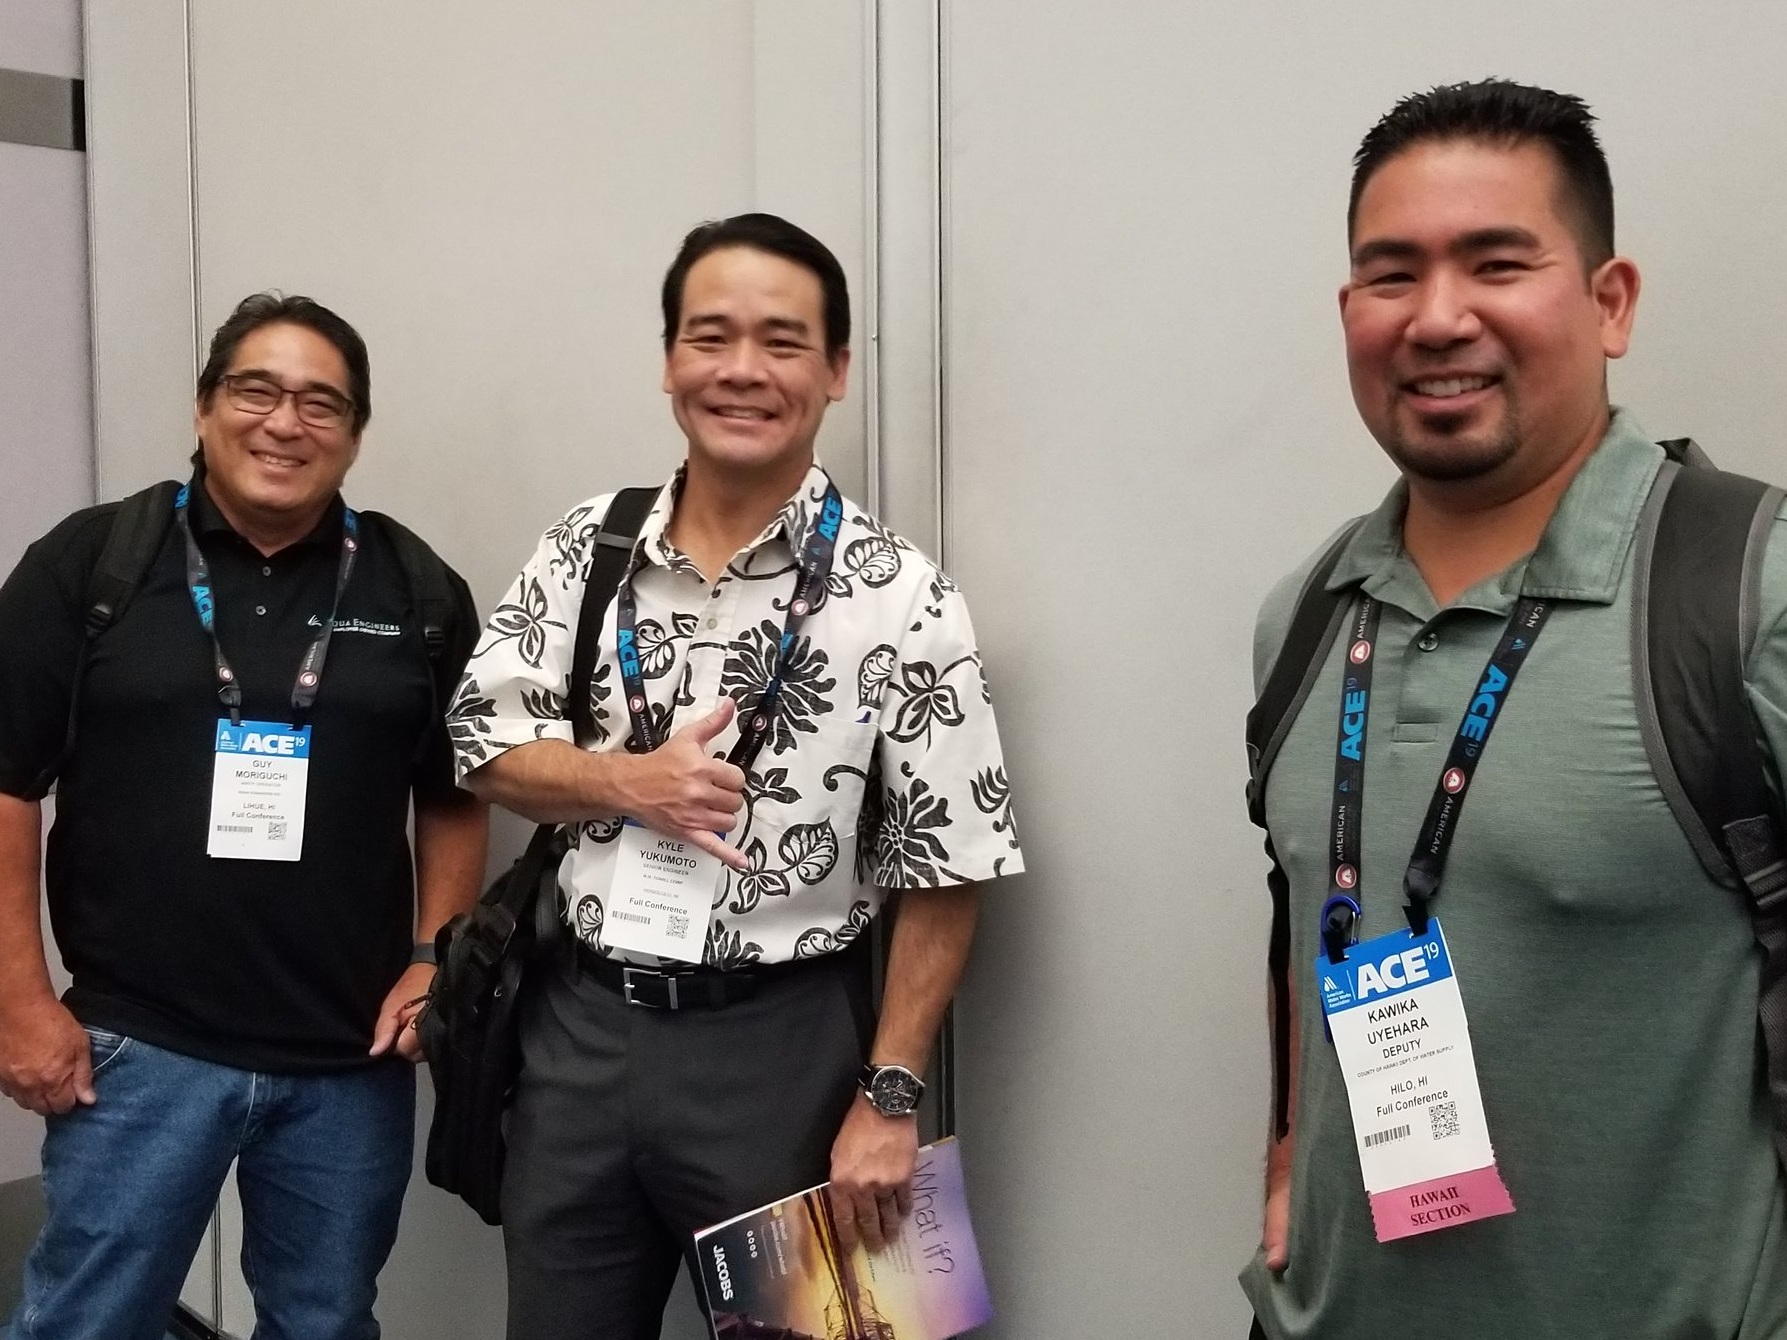 Guy Moriguchi, Kyle Yukumoto, and Kawika Uyehara between sessions.